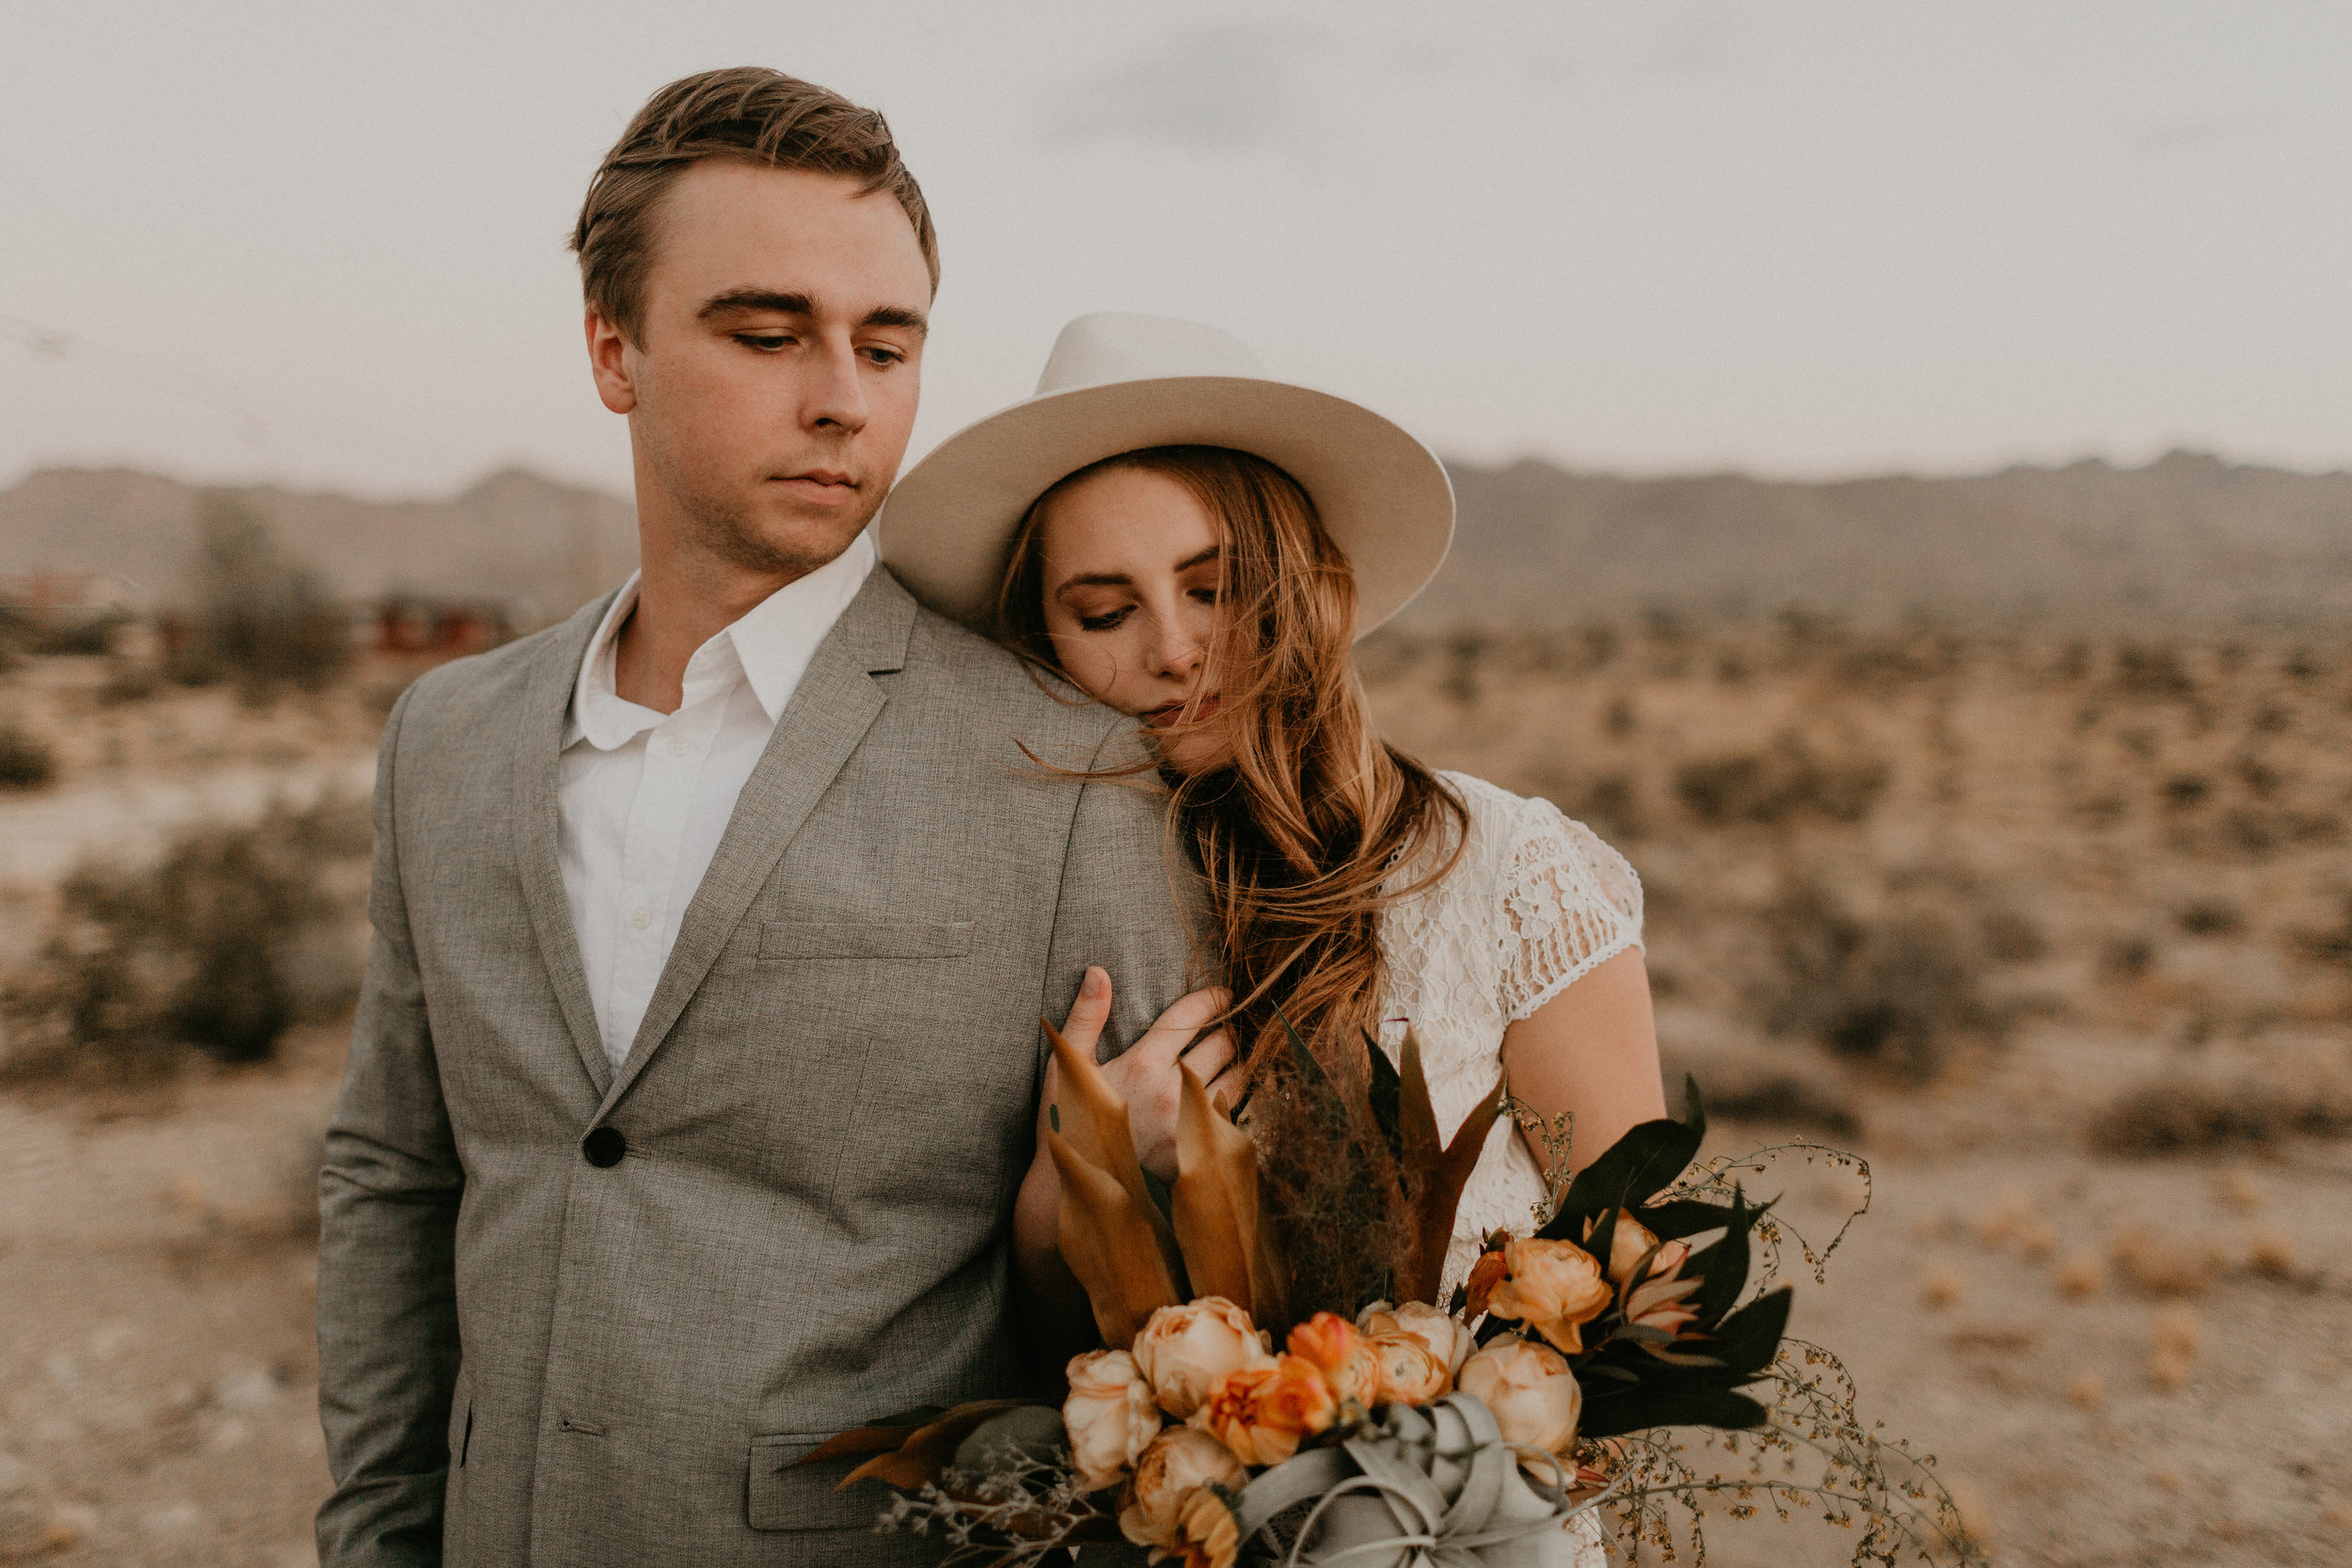 fall inspired airplant bouquet for desert elopement in joshua tree #lrqcfloral #airplantbouquet